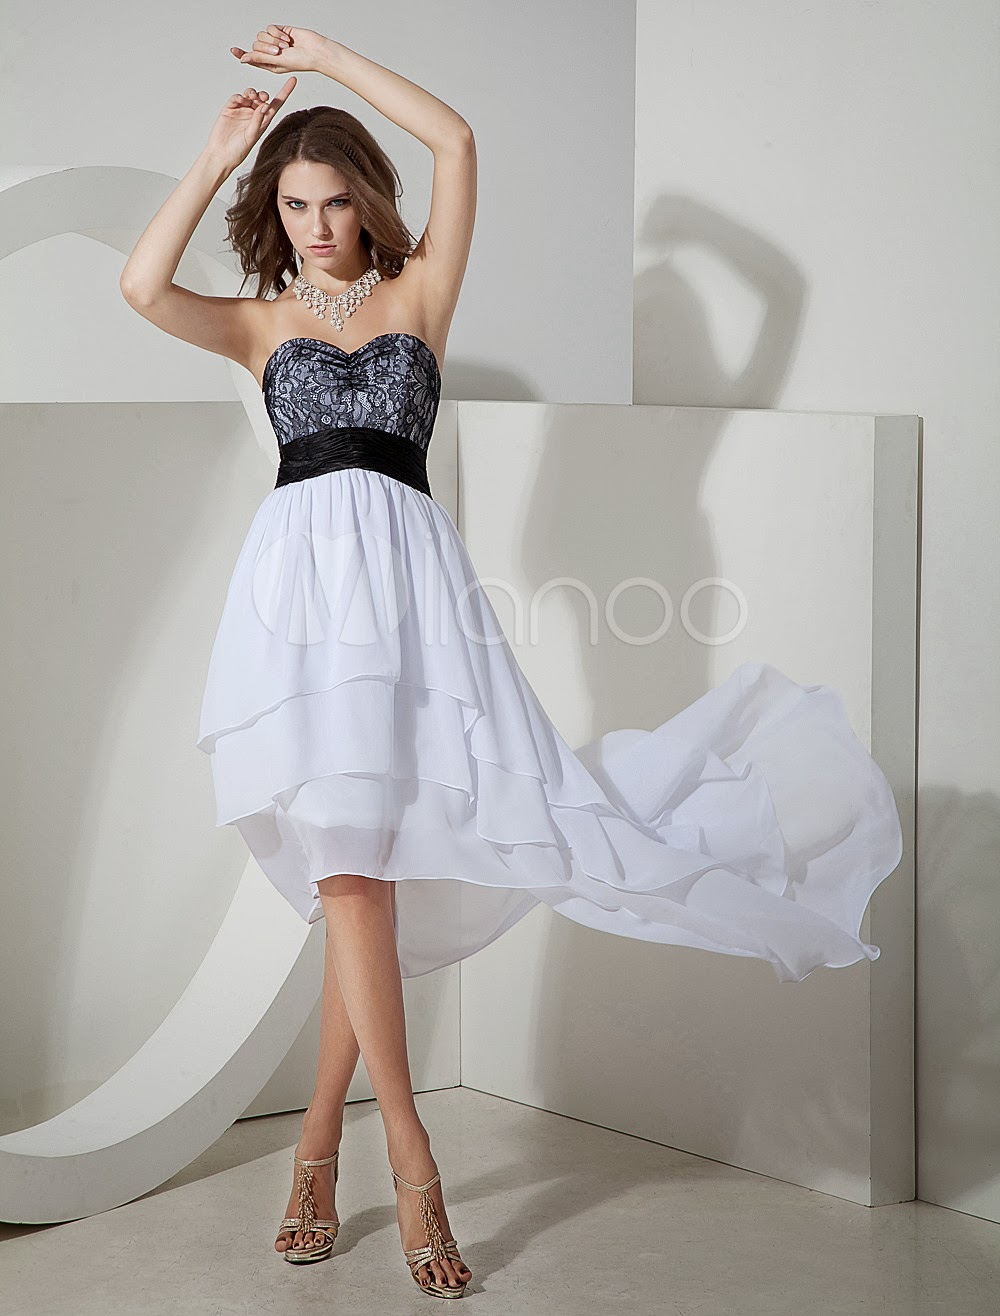 China Wholesale Occasion Dresses - White Asymmetrical Hemline Strapless Lace Chiffon Prom Dress